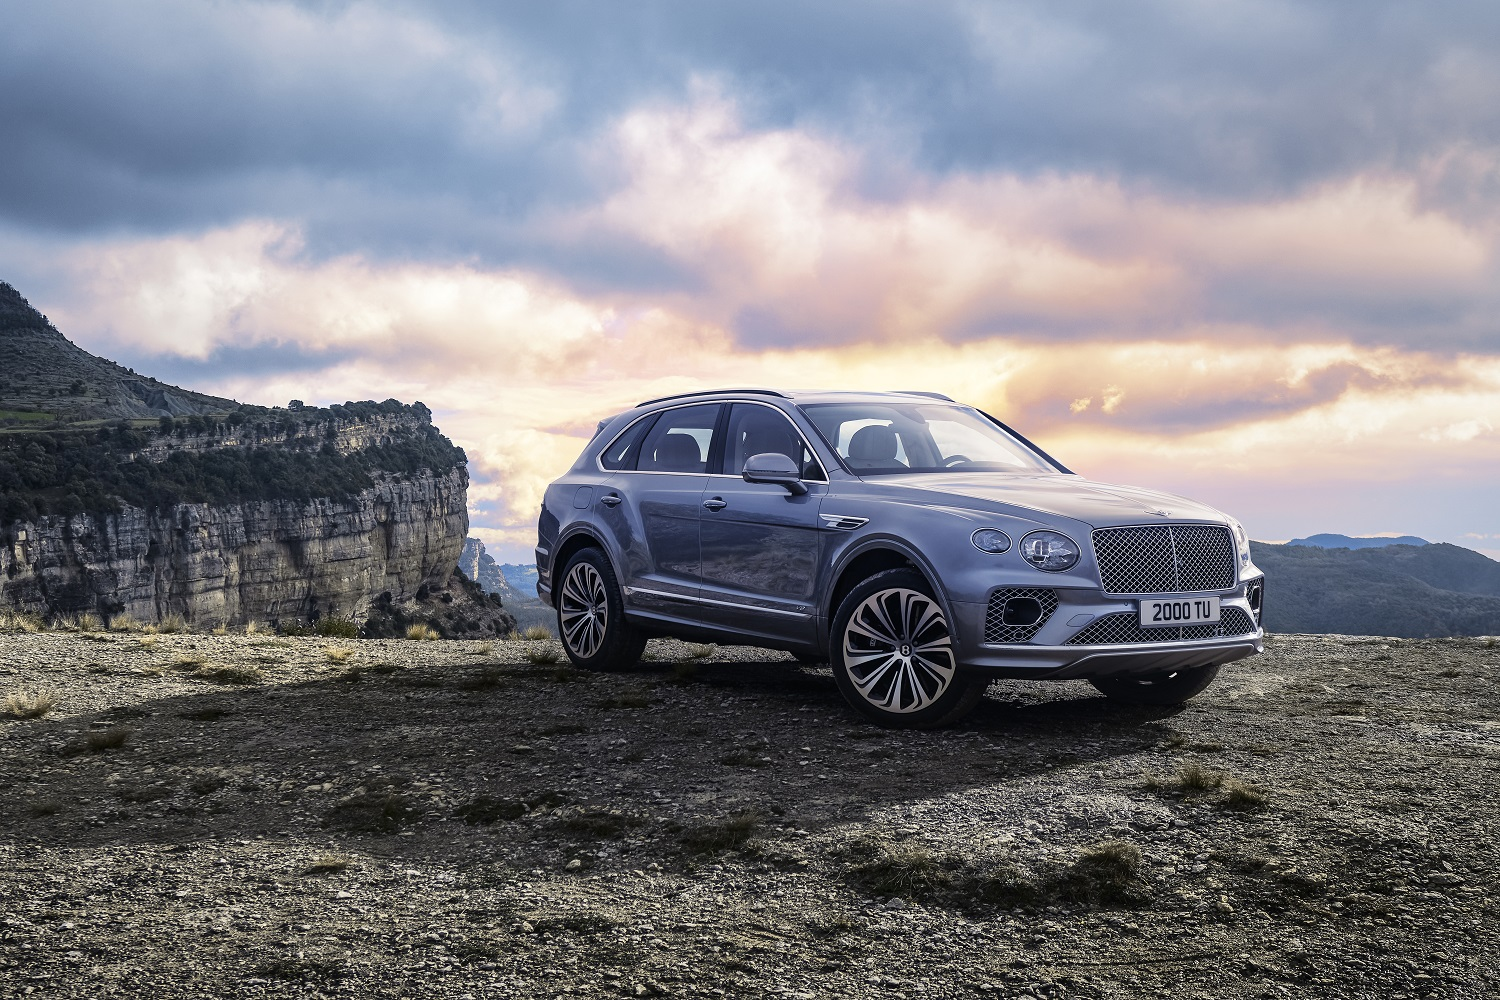 The New Bentley Bentayga - The Definitive Luxury SUV